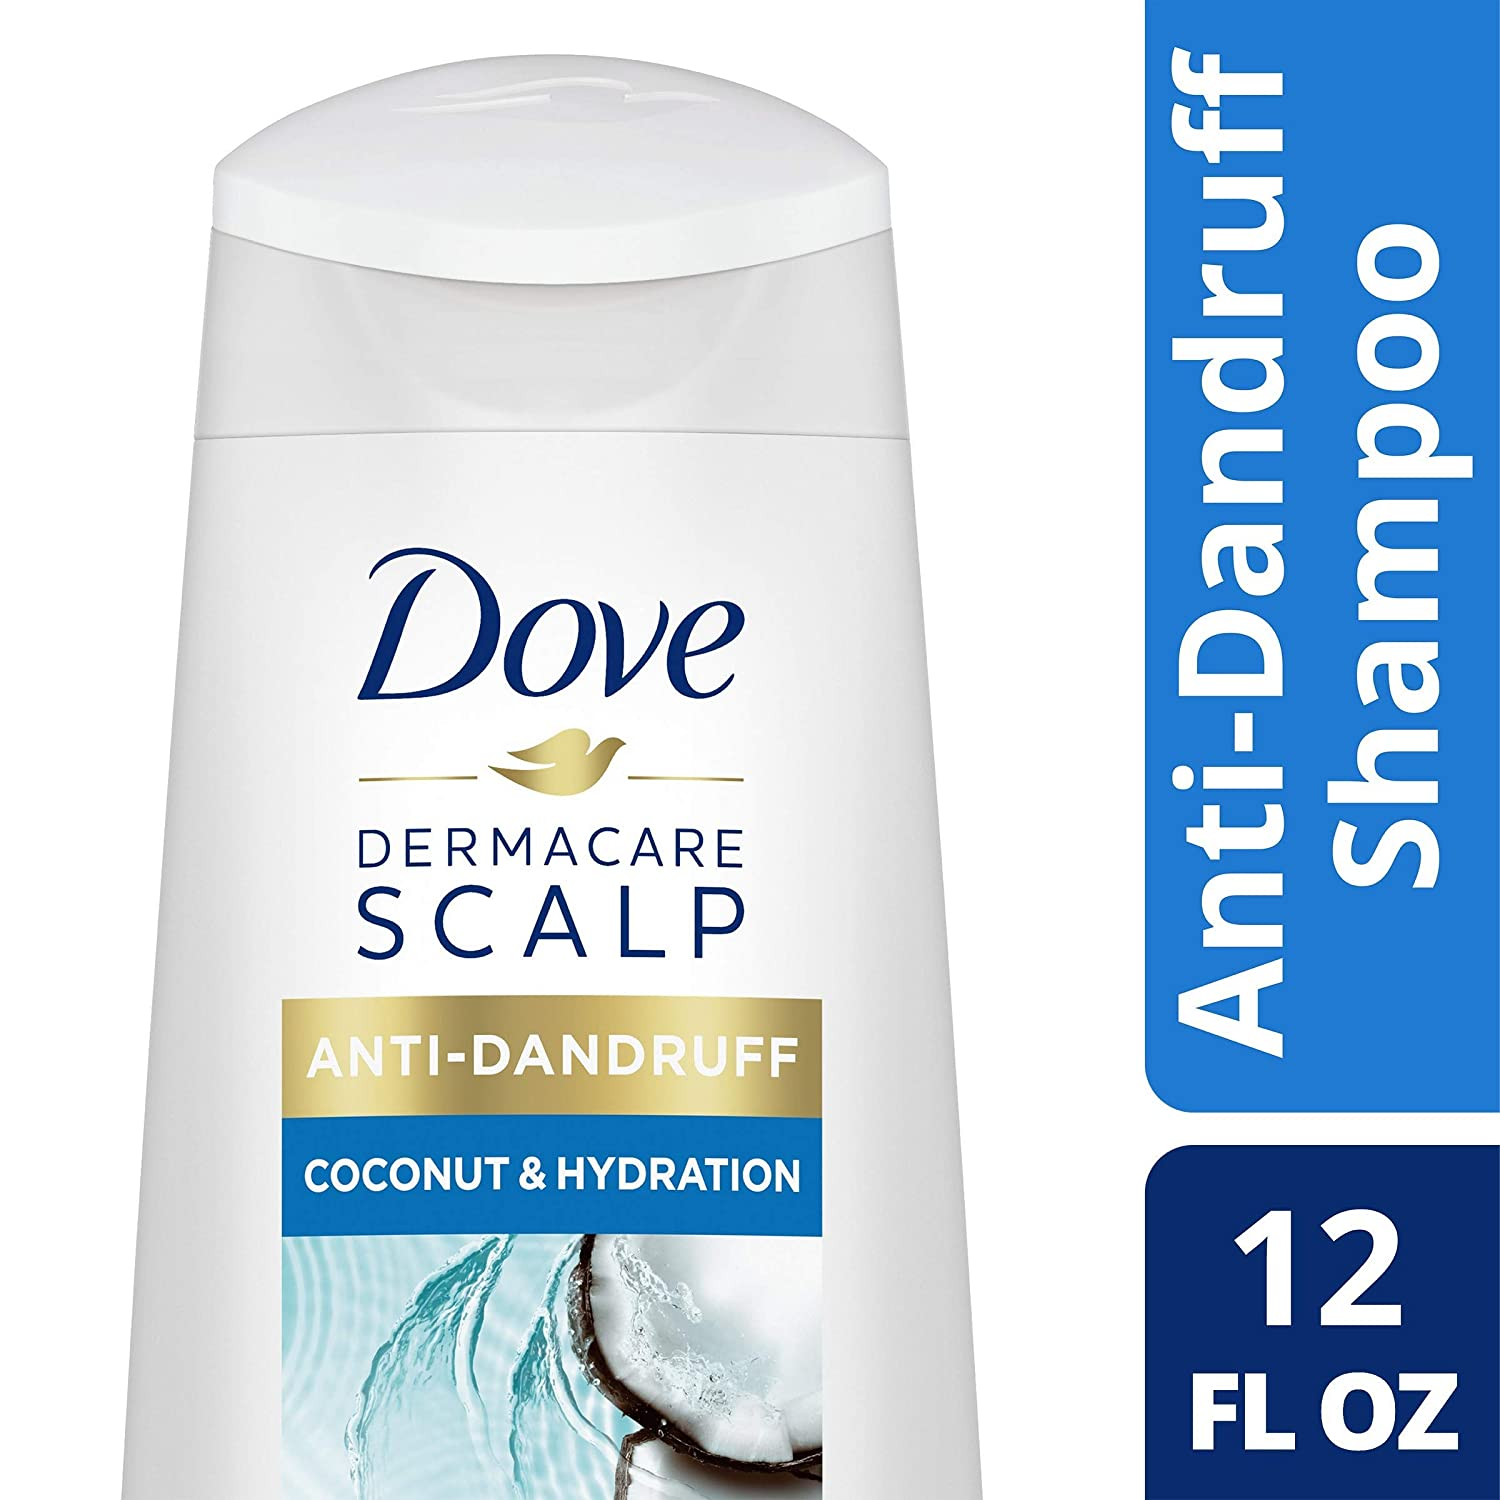 Dove DermaCare Scalp Coconut & Hydration Anti-Dandruff Shampoo 12 oz